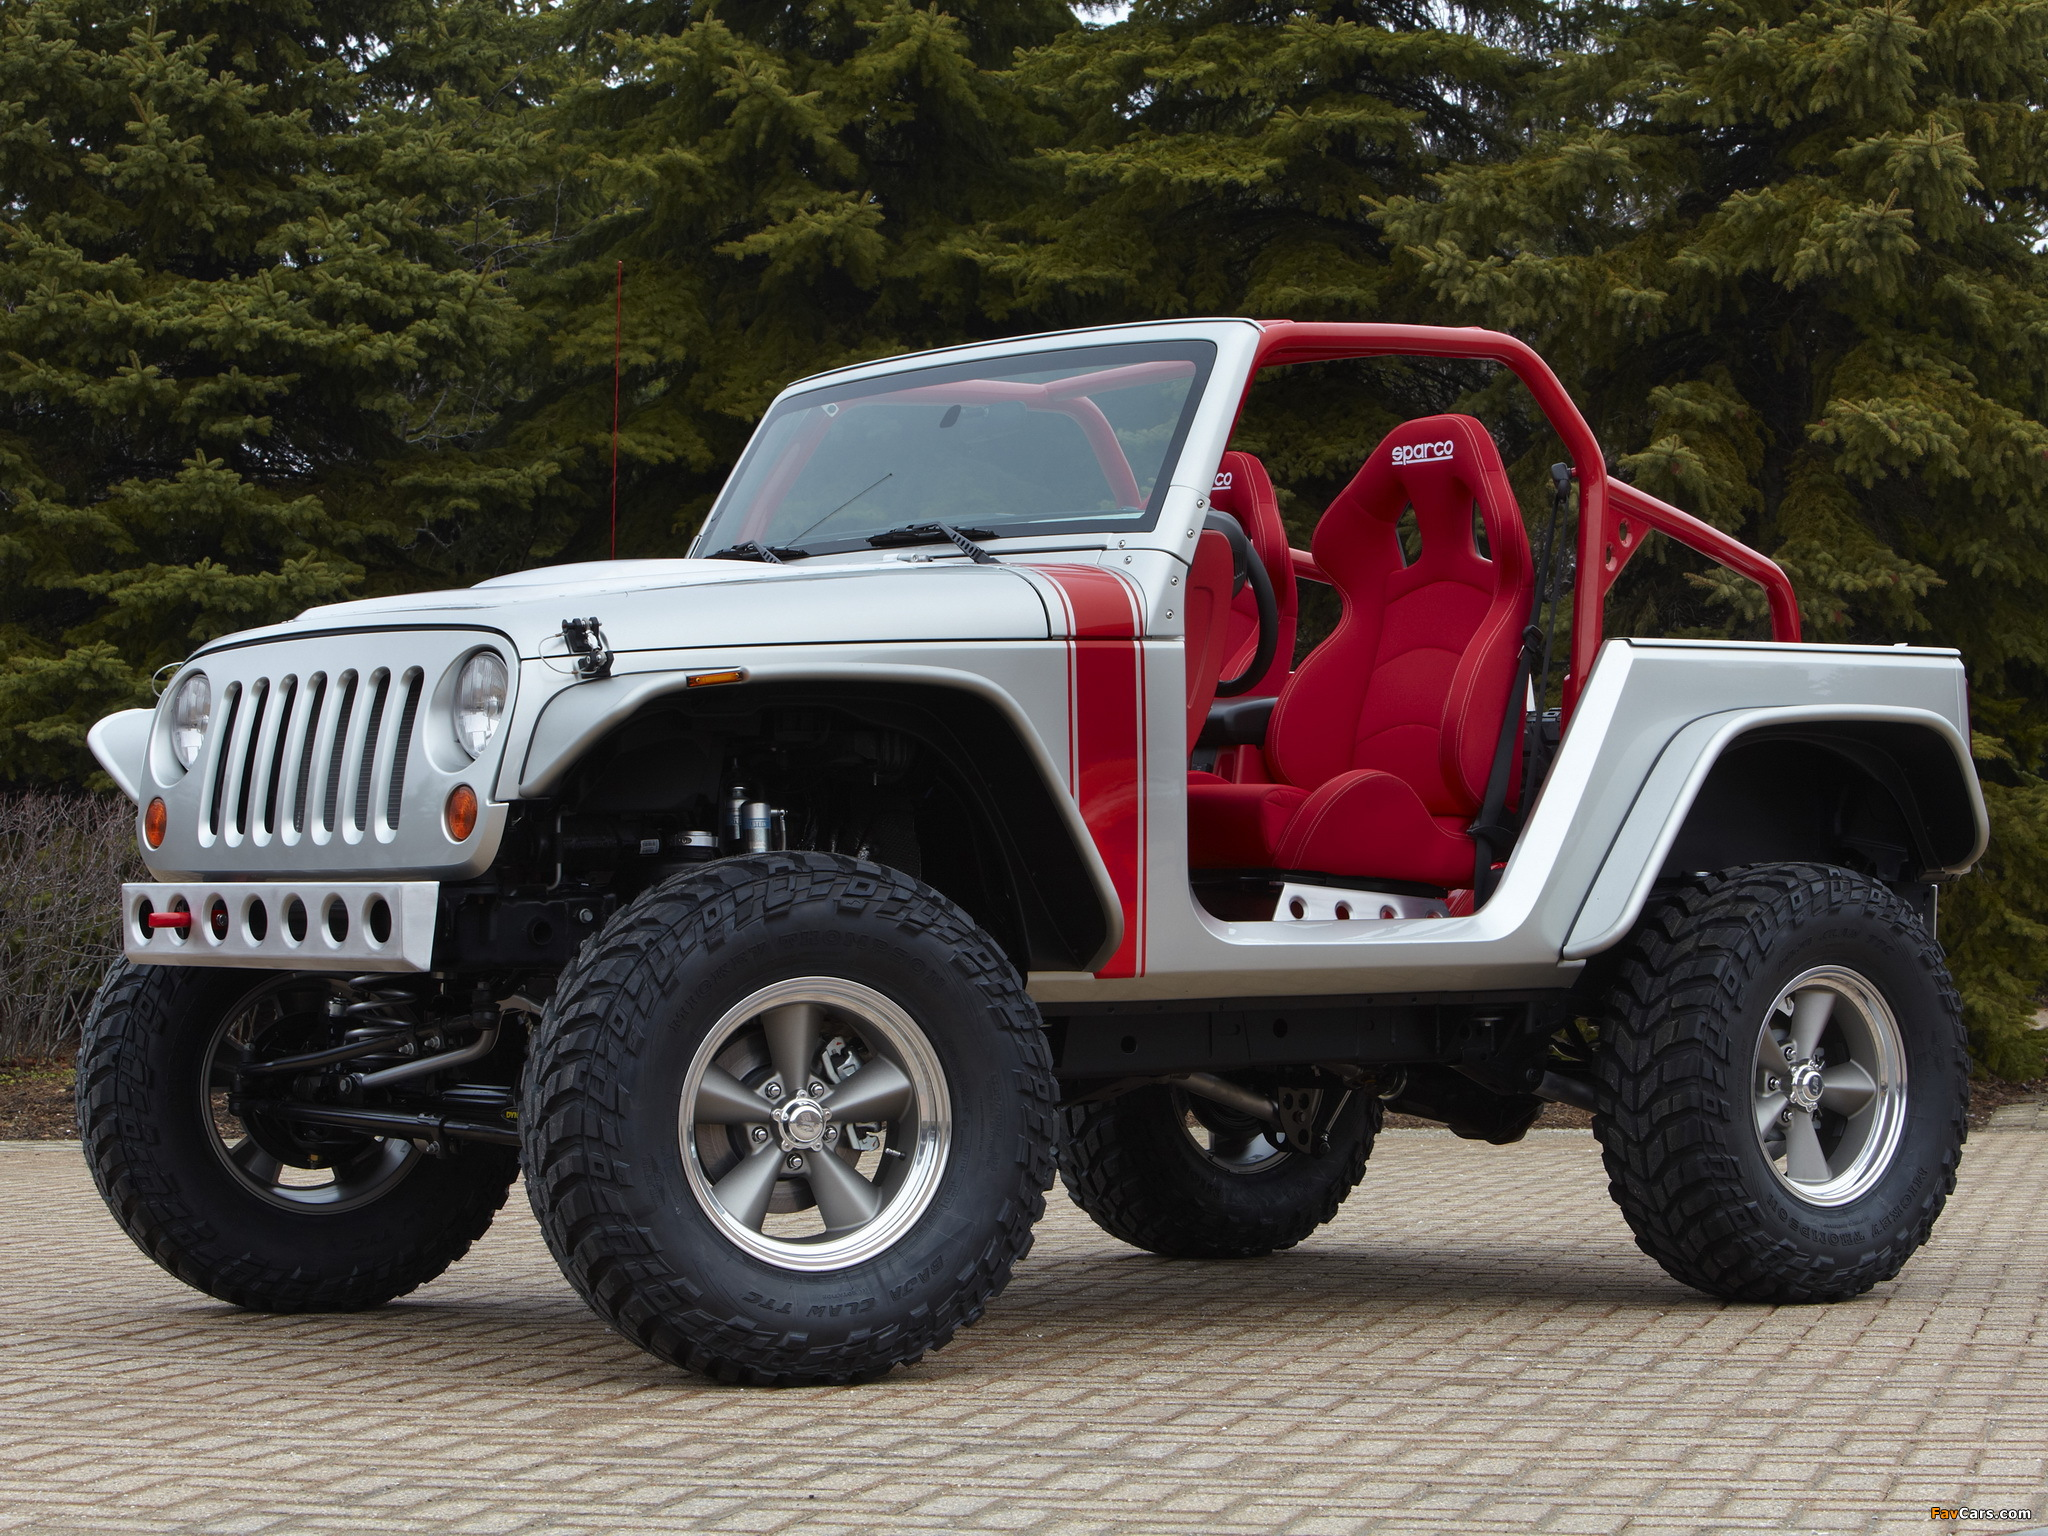 Images of Mopar Jeep Wrangler Pork Chop Concept (JK) 2011